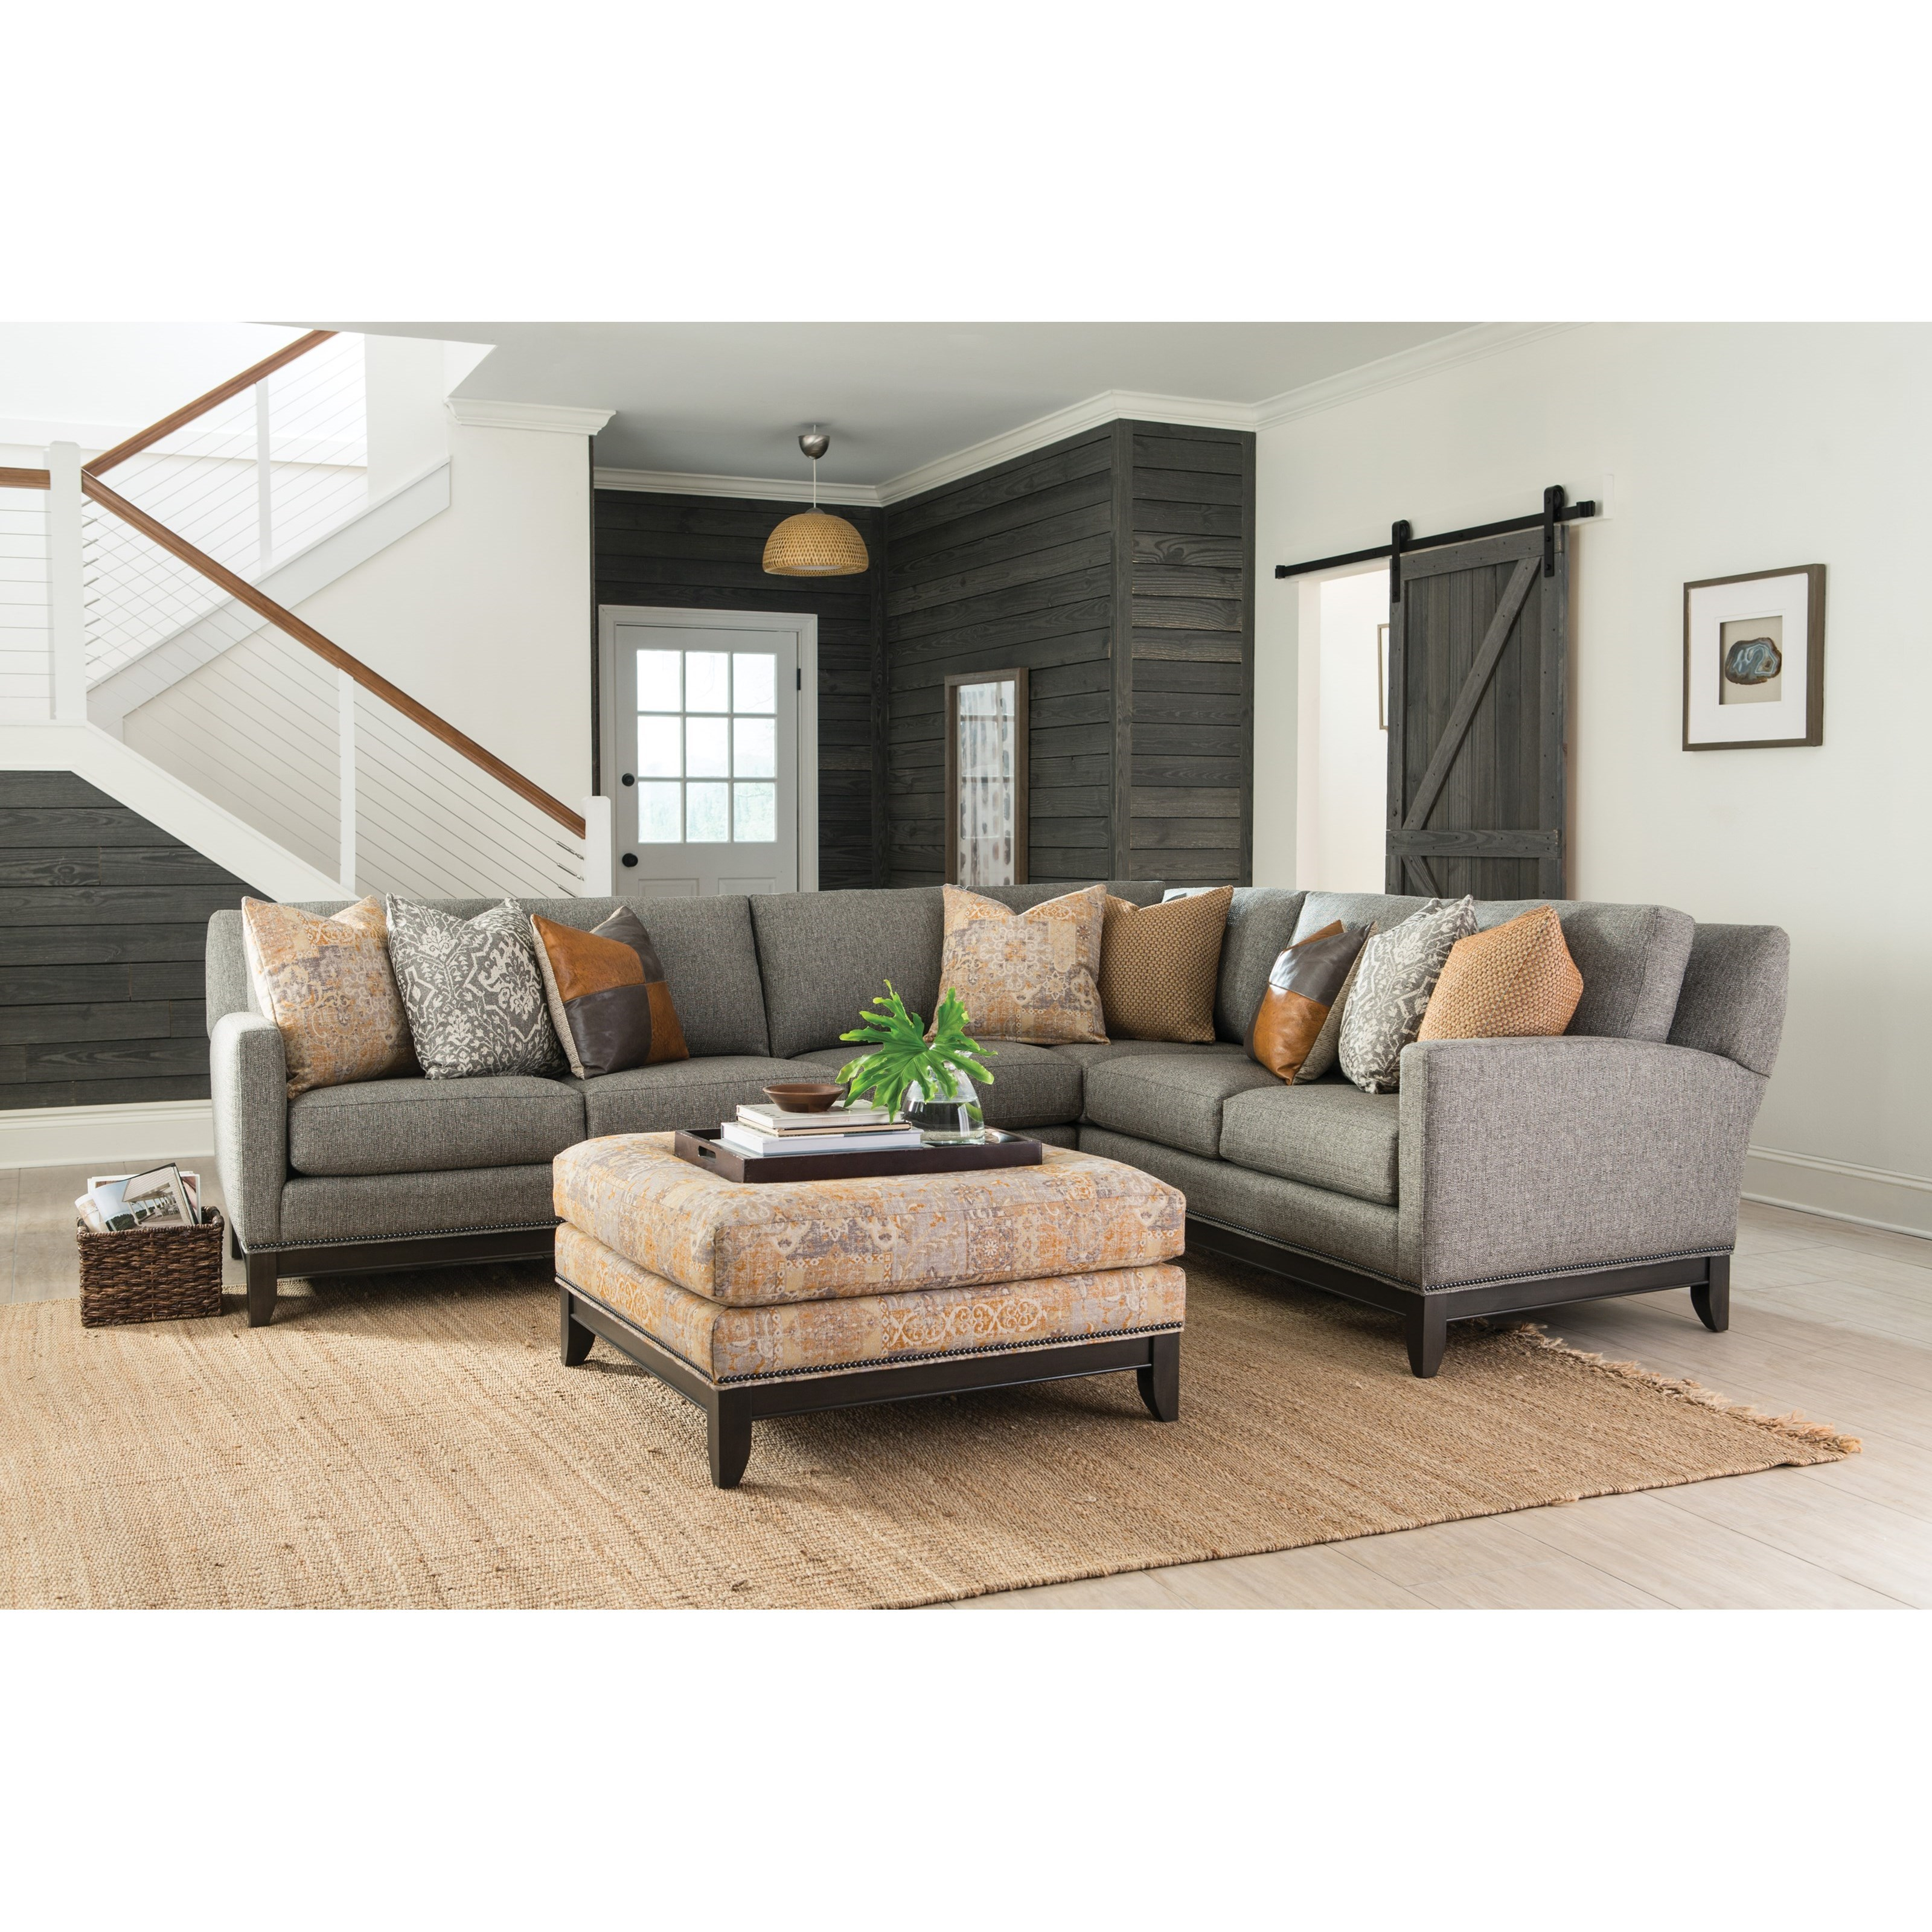 Smith Brothers 238 Stationary Living Room Group Dunk